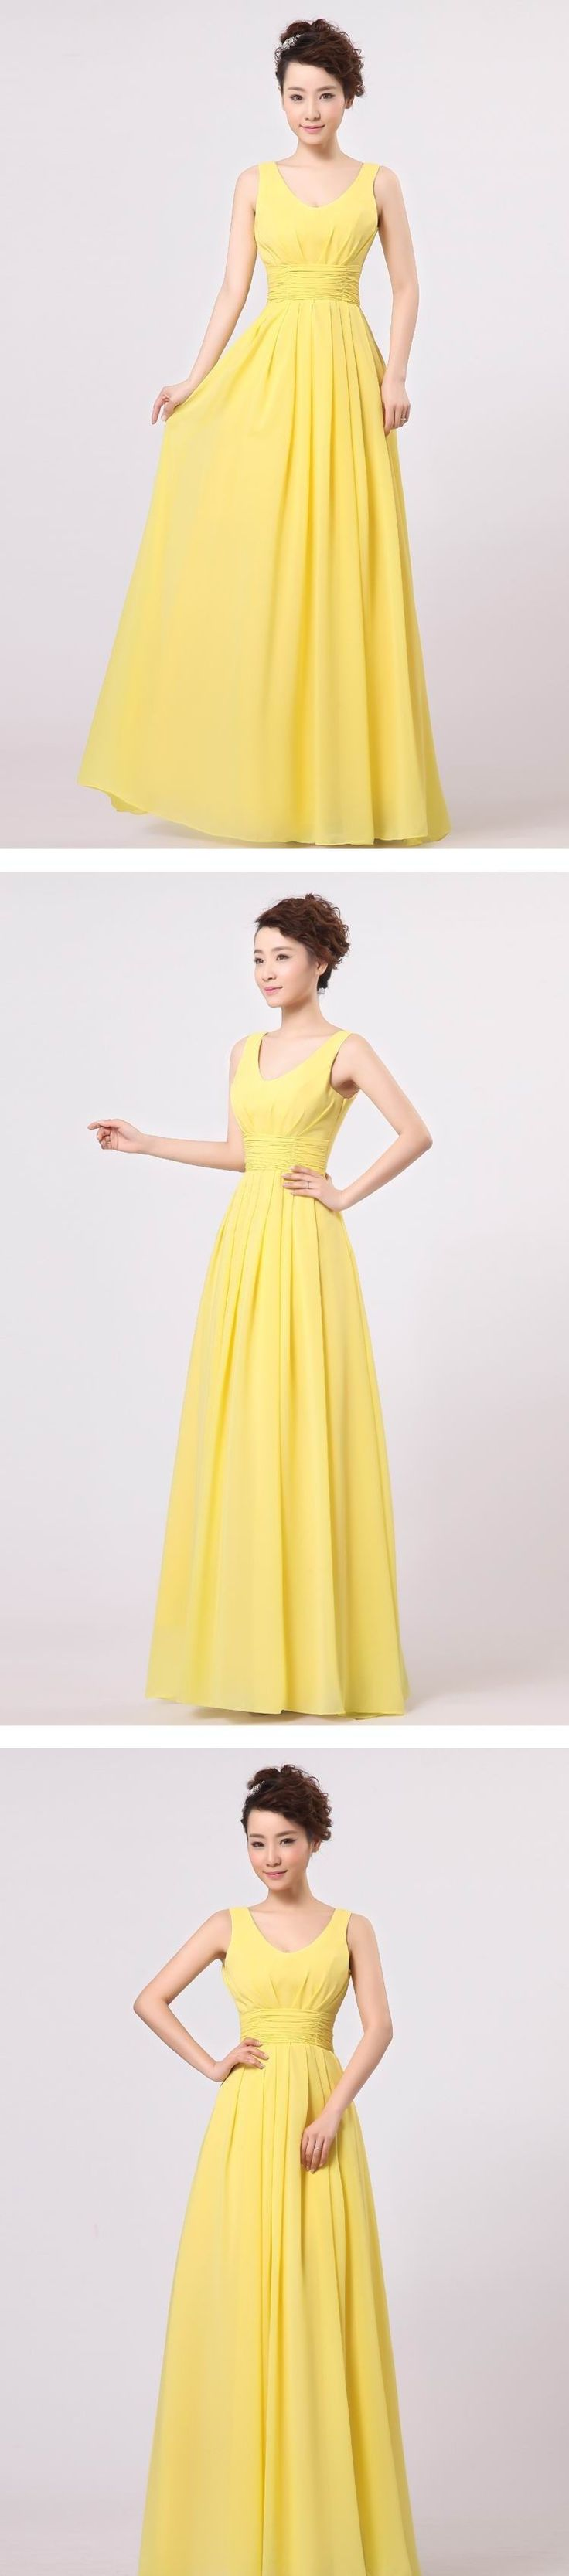 343 best yellow bridesmaids dresse inspiration images on pinterest 343 best yellow bridesmaids dresse inspiration images on pinterest yellow bridesmaid dresses yellow bridesmaids and marriage ombrellifo Image collections